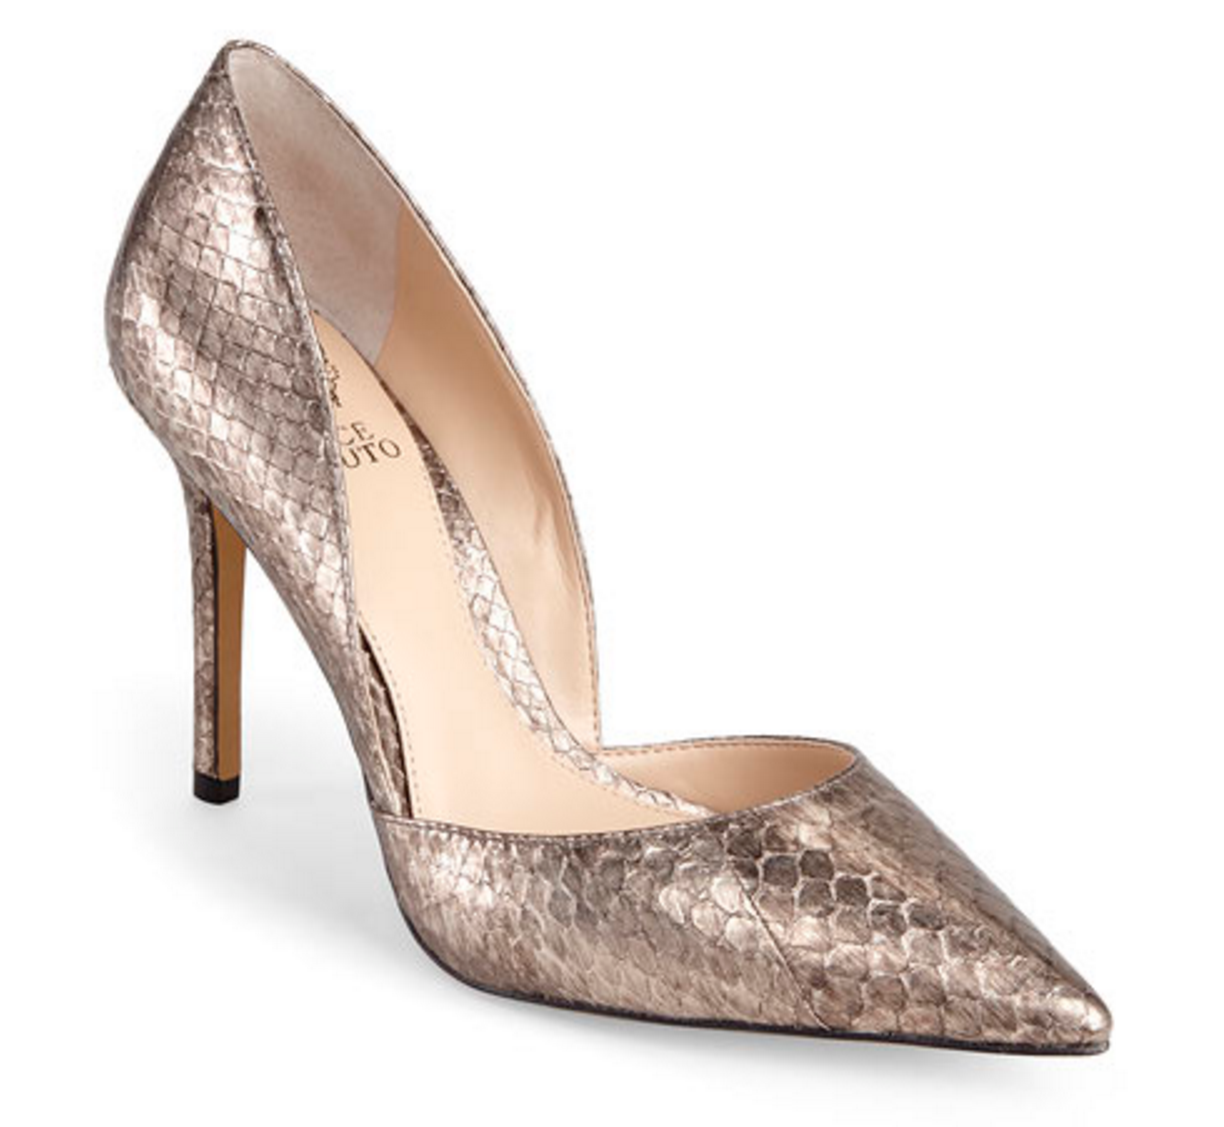 Vince Camuto Brown Snake Rowin Pumps